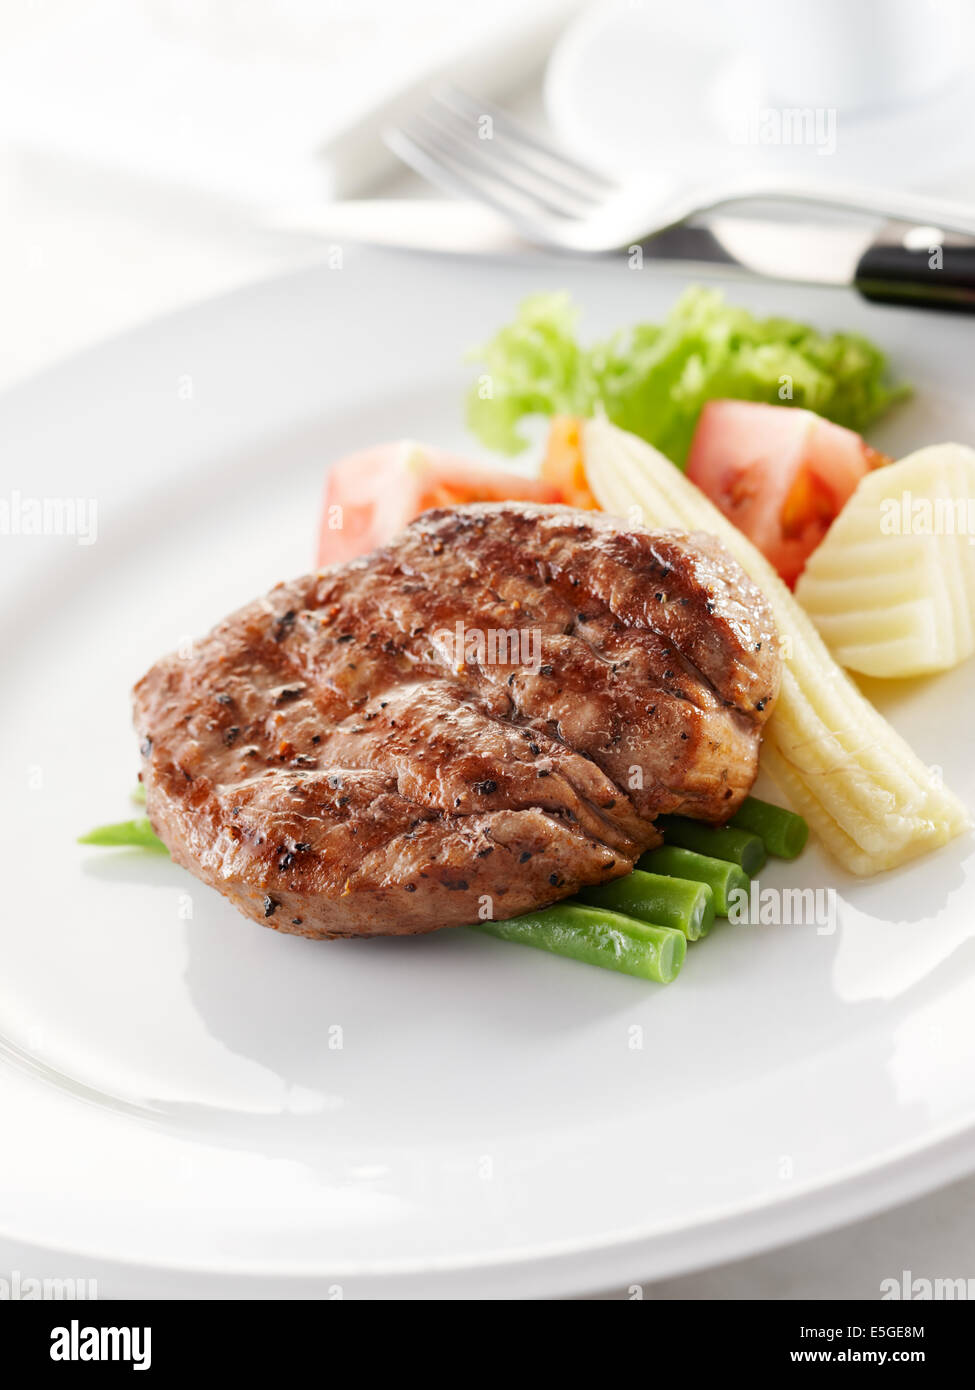 delicious tenderloin steak, shallow depth of field - Stock Image